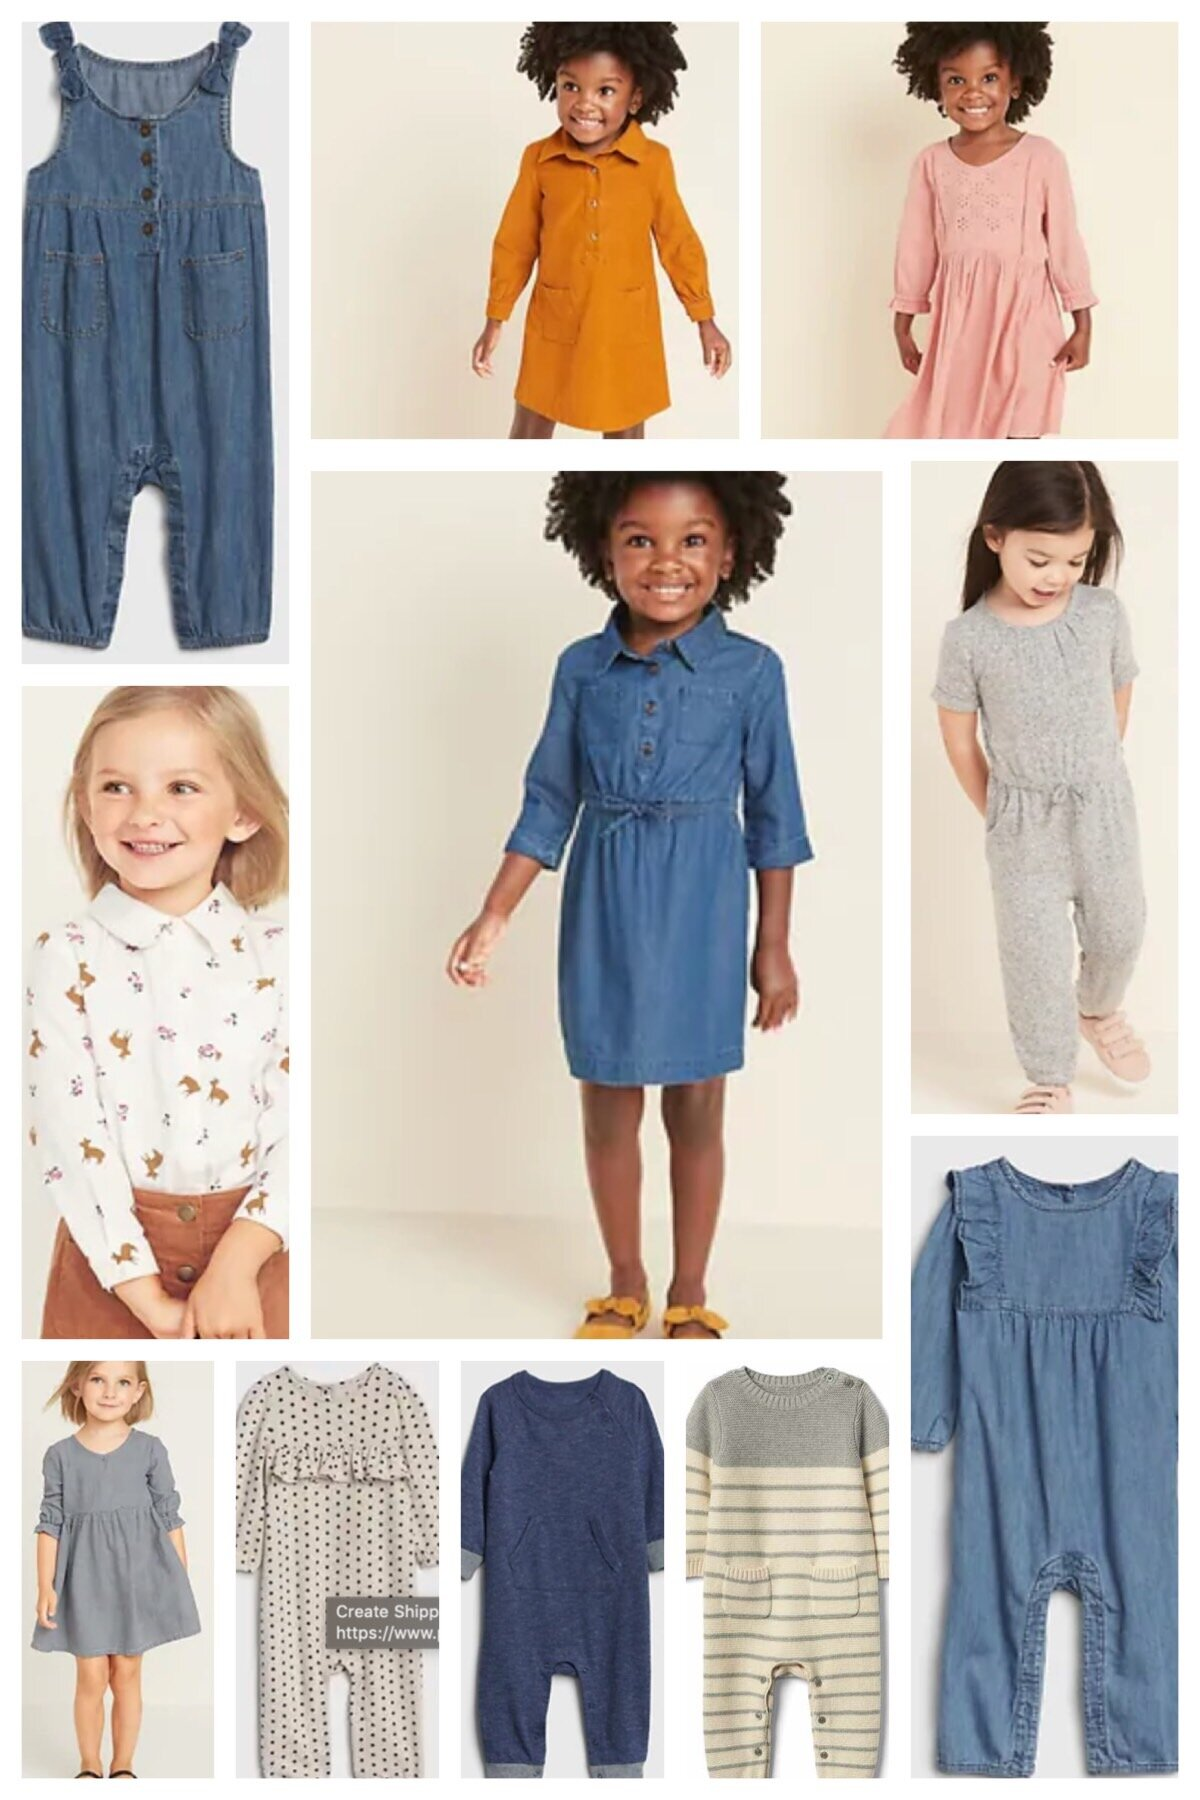 Fall 2019 Family Photography outfits